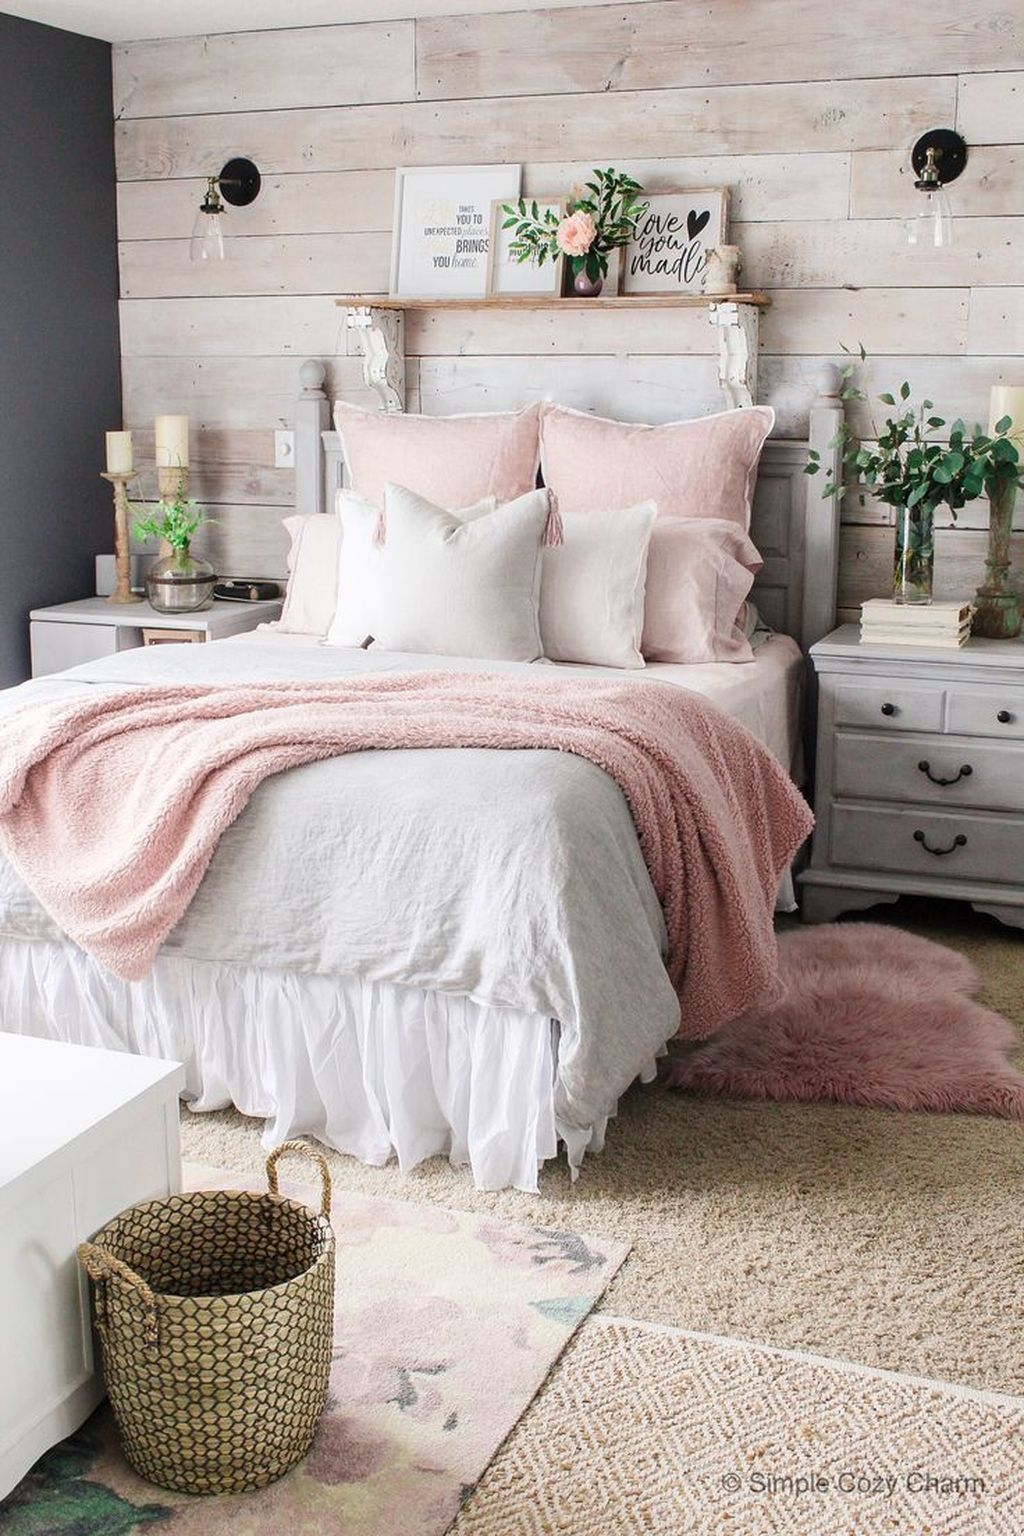 bedroom, brown rug, white wooden side table, white wooden bed platform, wooden accent wall, grey wall